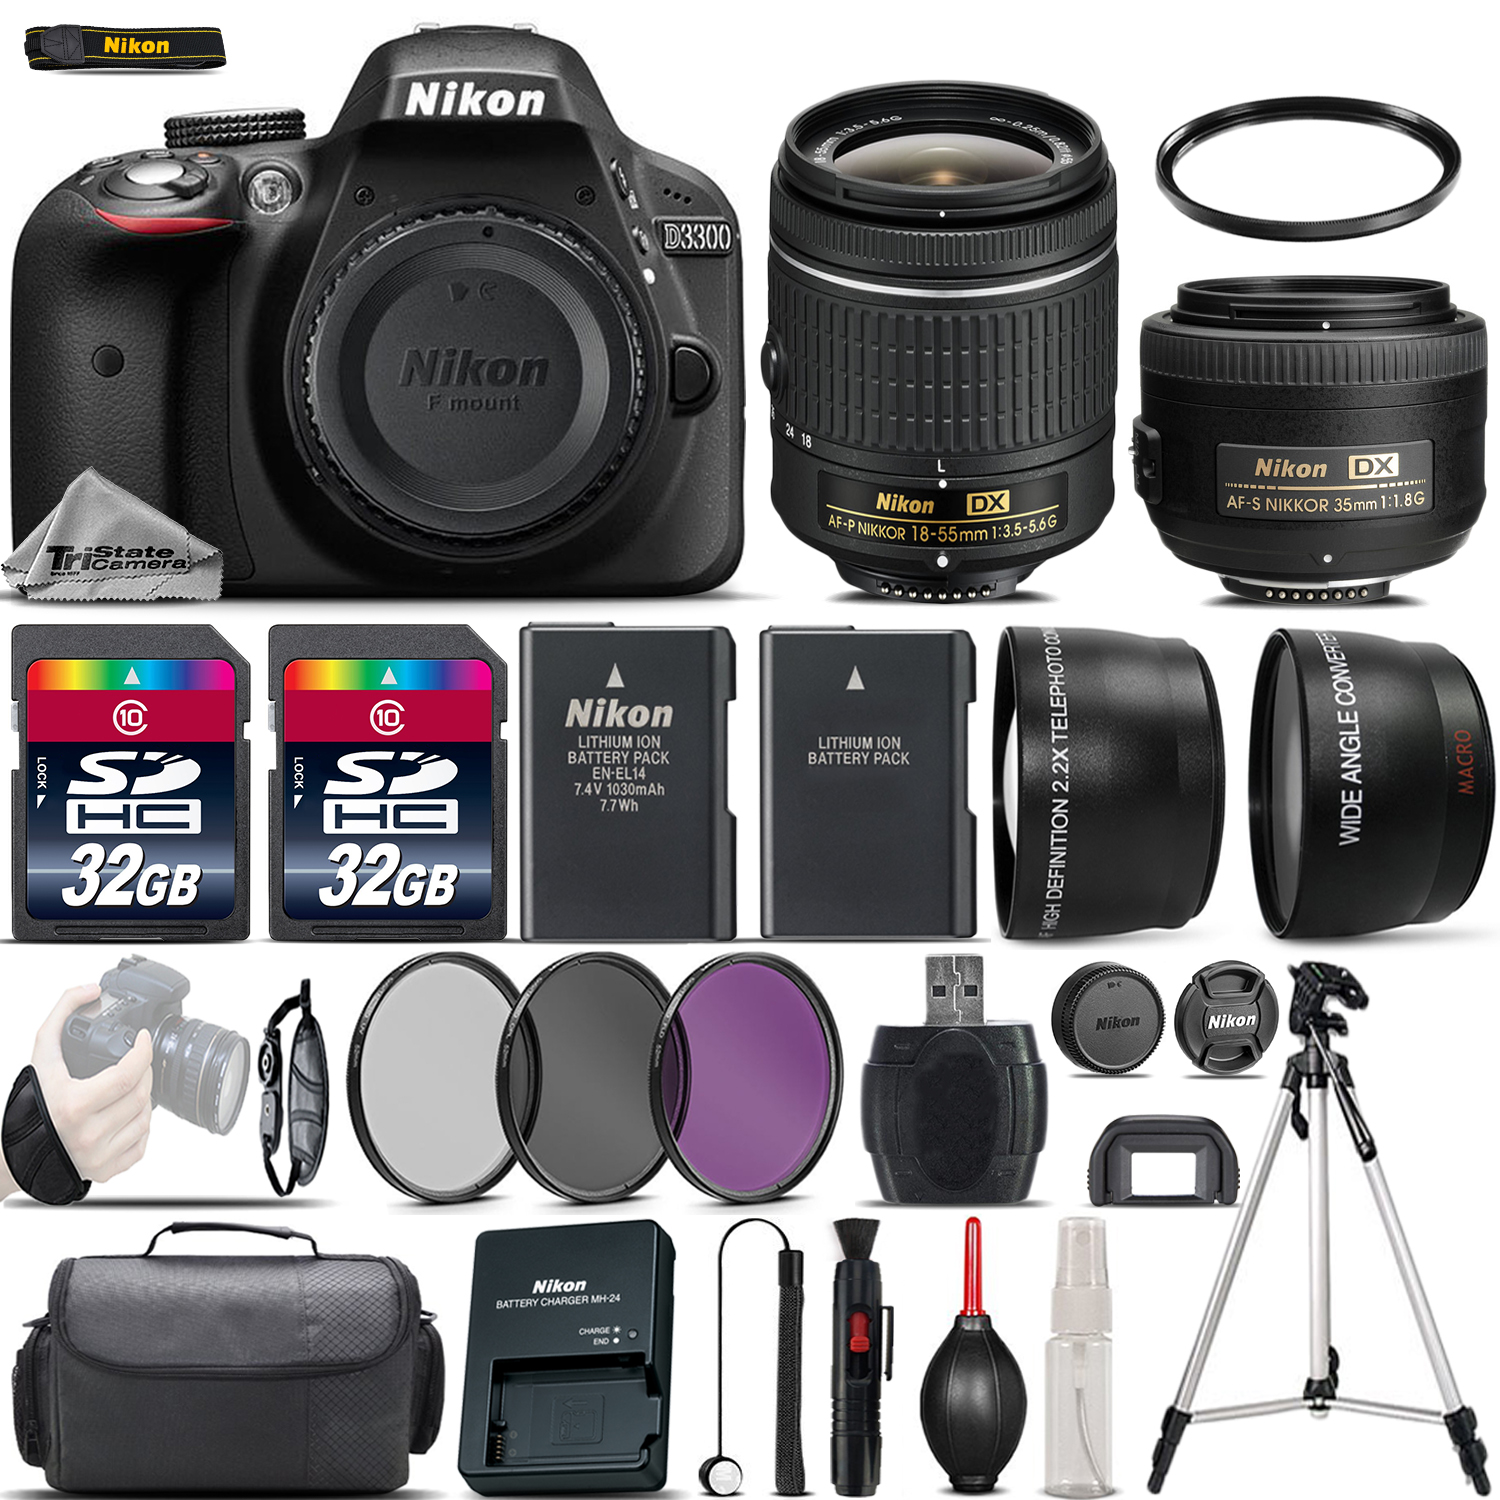 Nikon D3300 Digital SLR Camera + 18-55mm VR + 35mm 1.8G Lens + 64GB - 4 Lens Kit